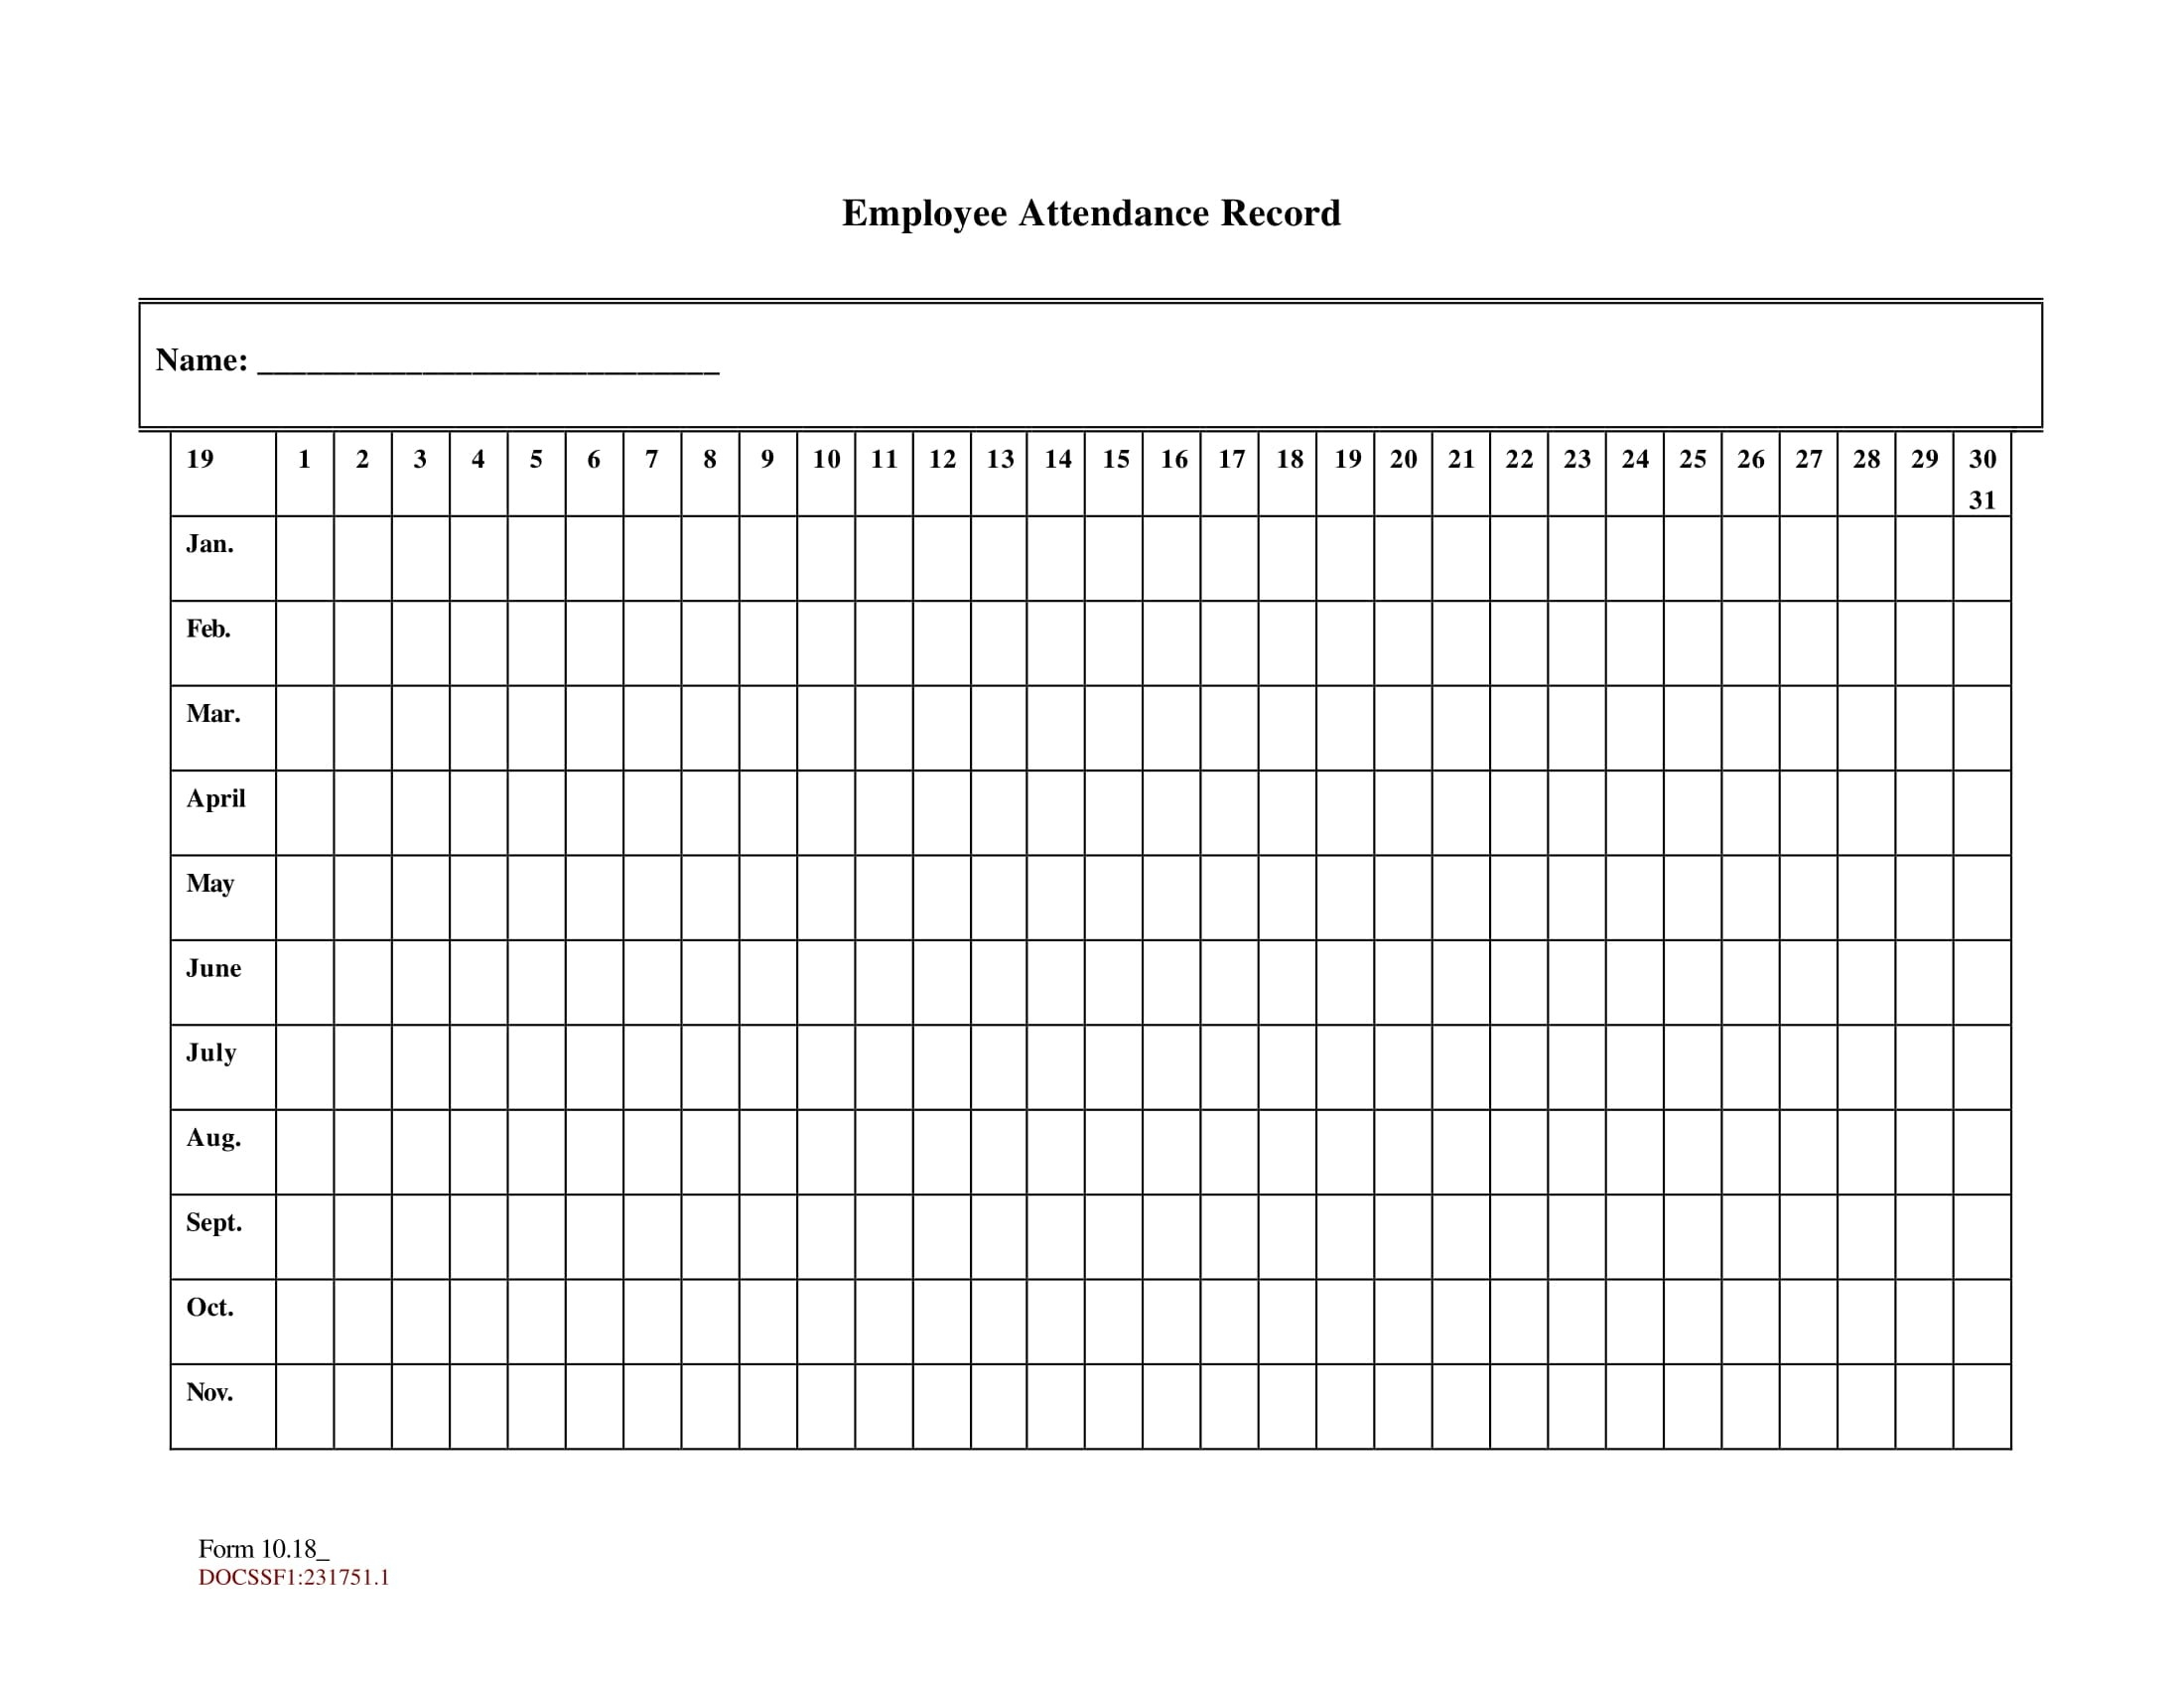 Free Printable Employee Attendance Sheet Pdf, Word, Excel  Free Printable 2020 Employee Attendance Sheet